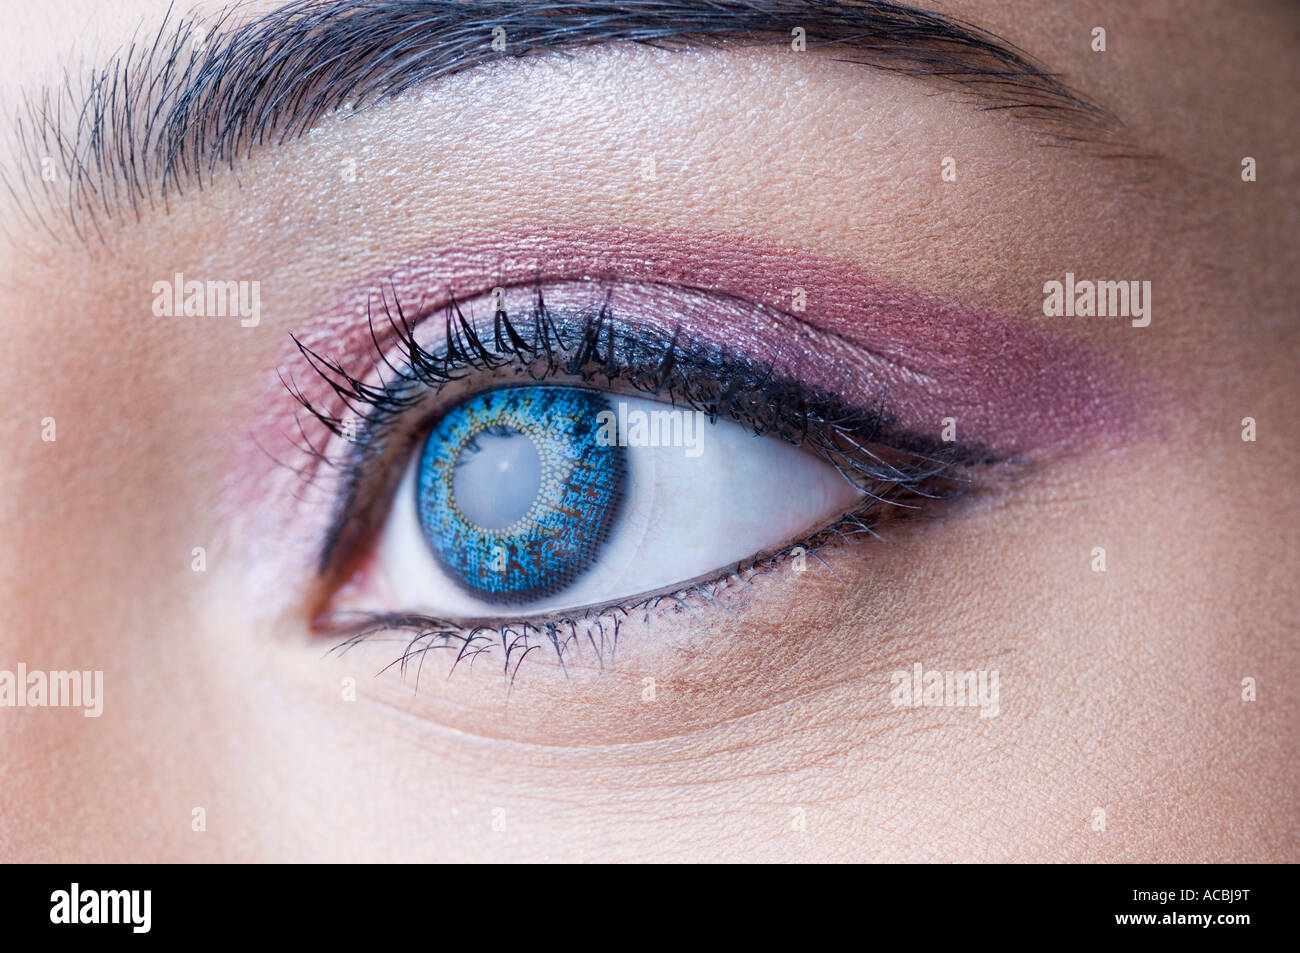 Close-up of a woman's eye - Stock Image